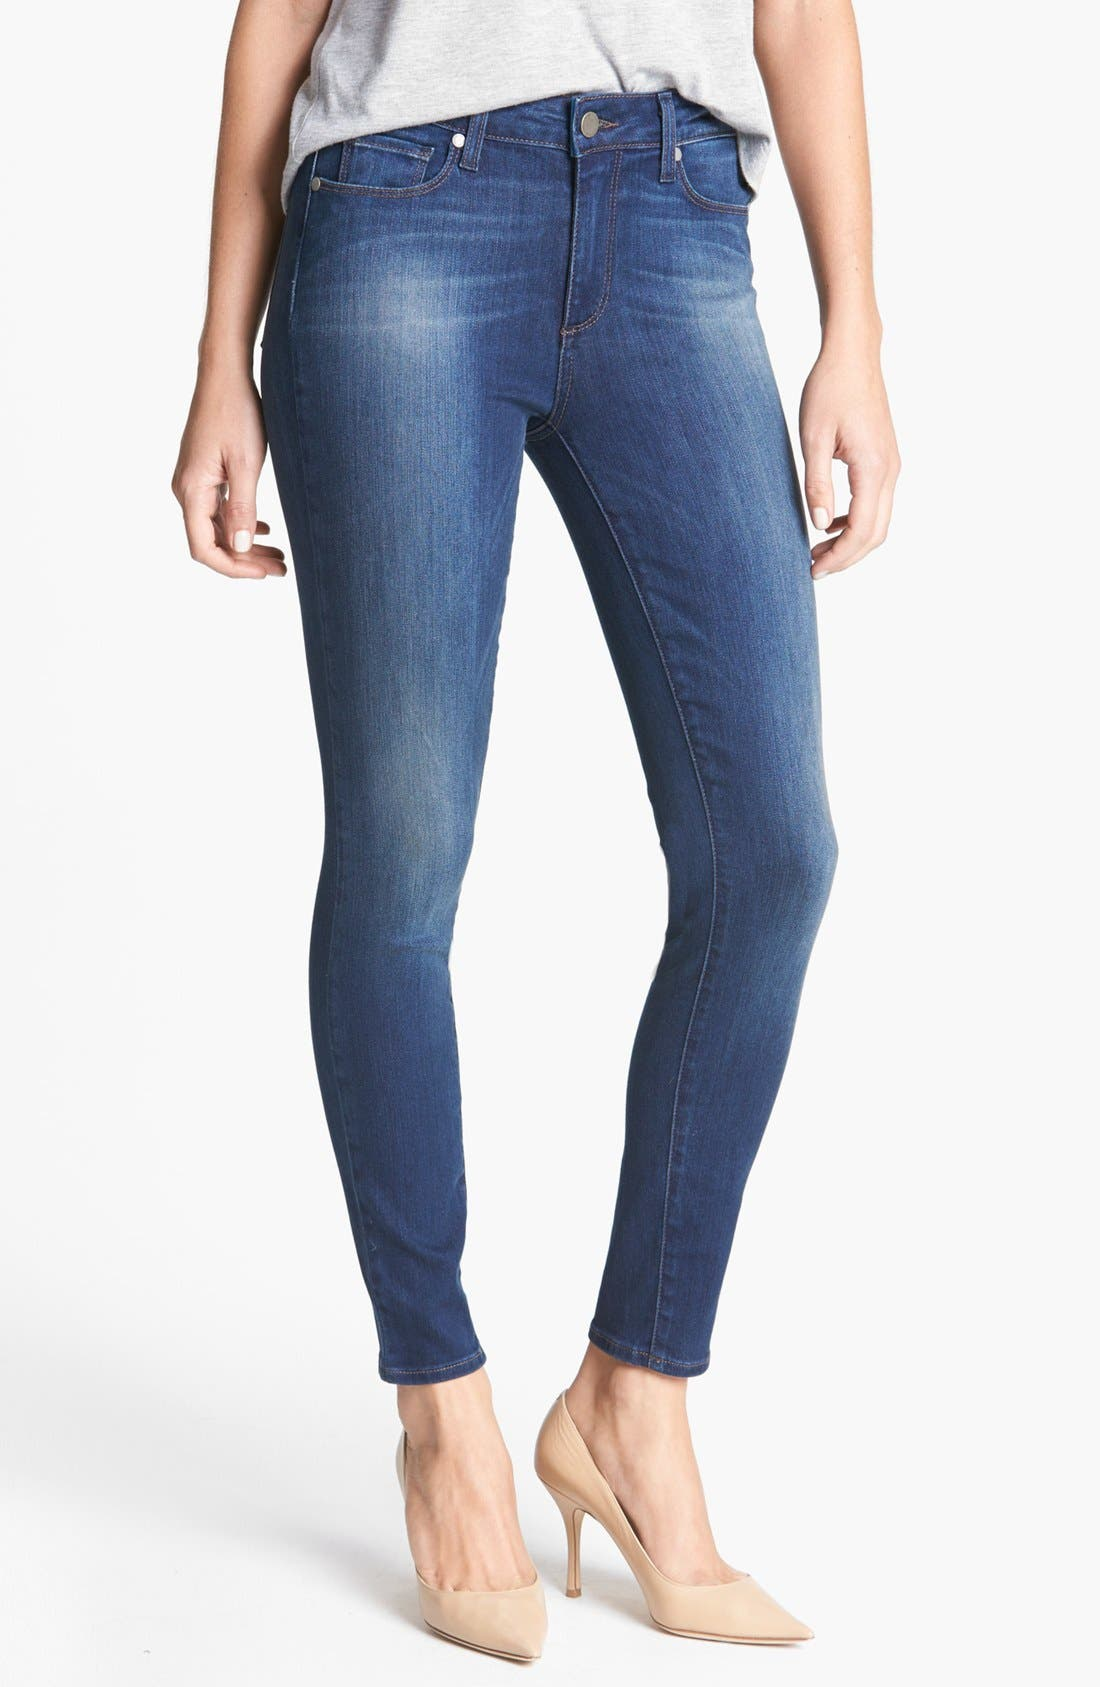 Alternate Image 1 Selected - Paige Denim 'Hoxton' Skinny Ankle Jeans (Zoe)